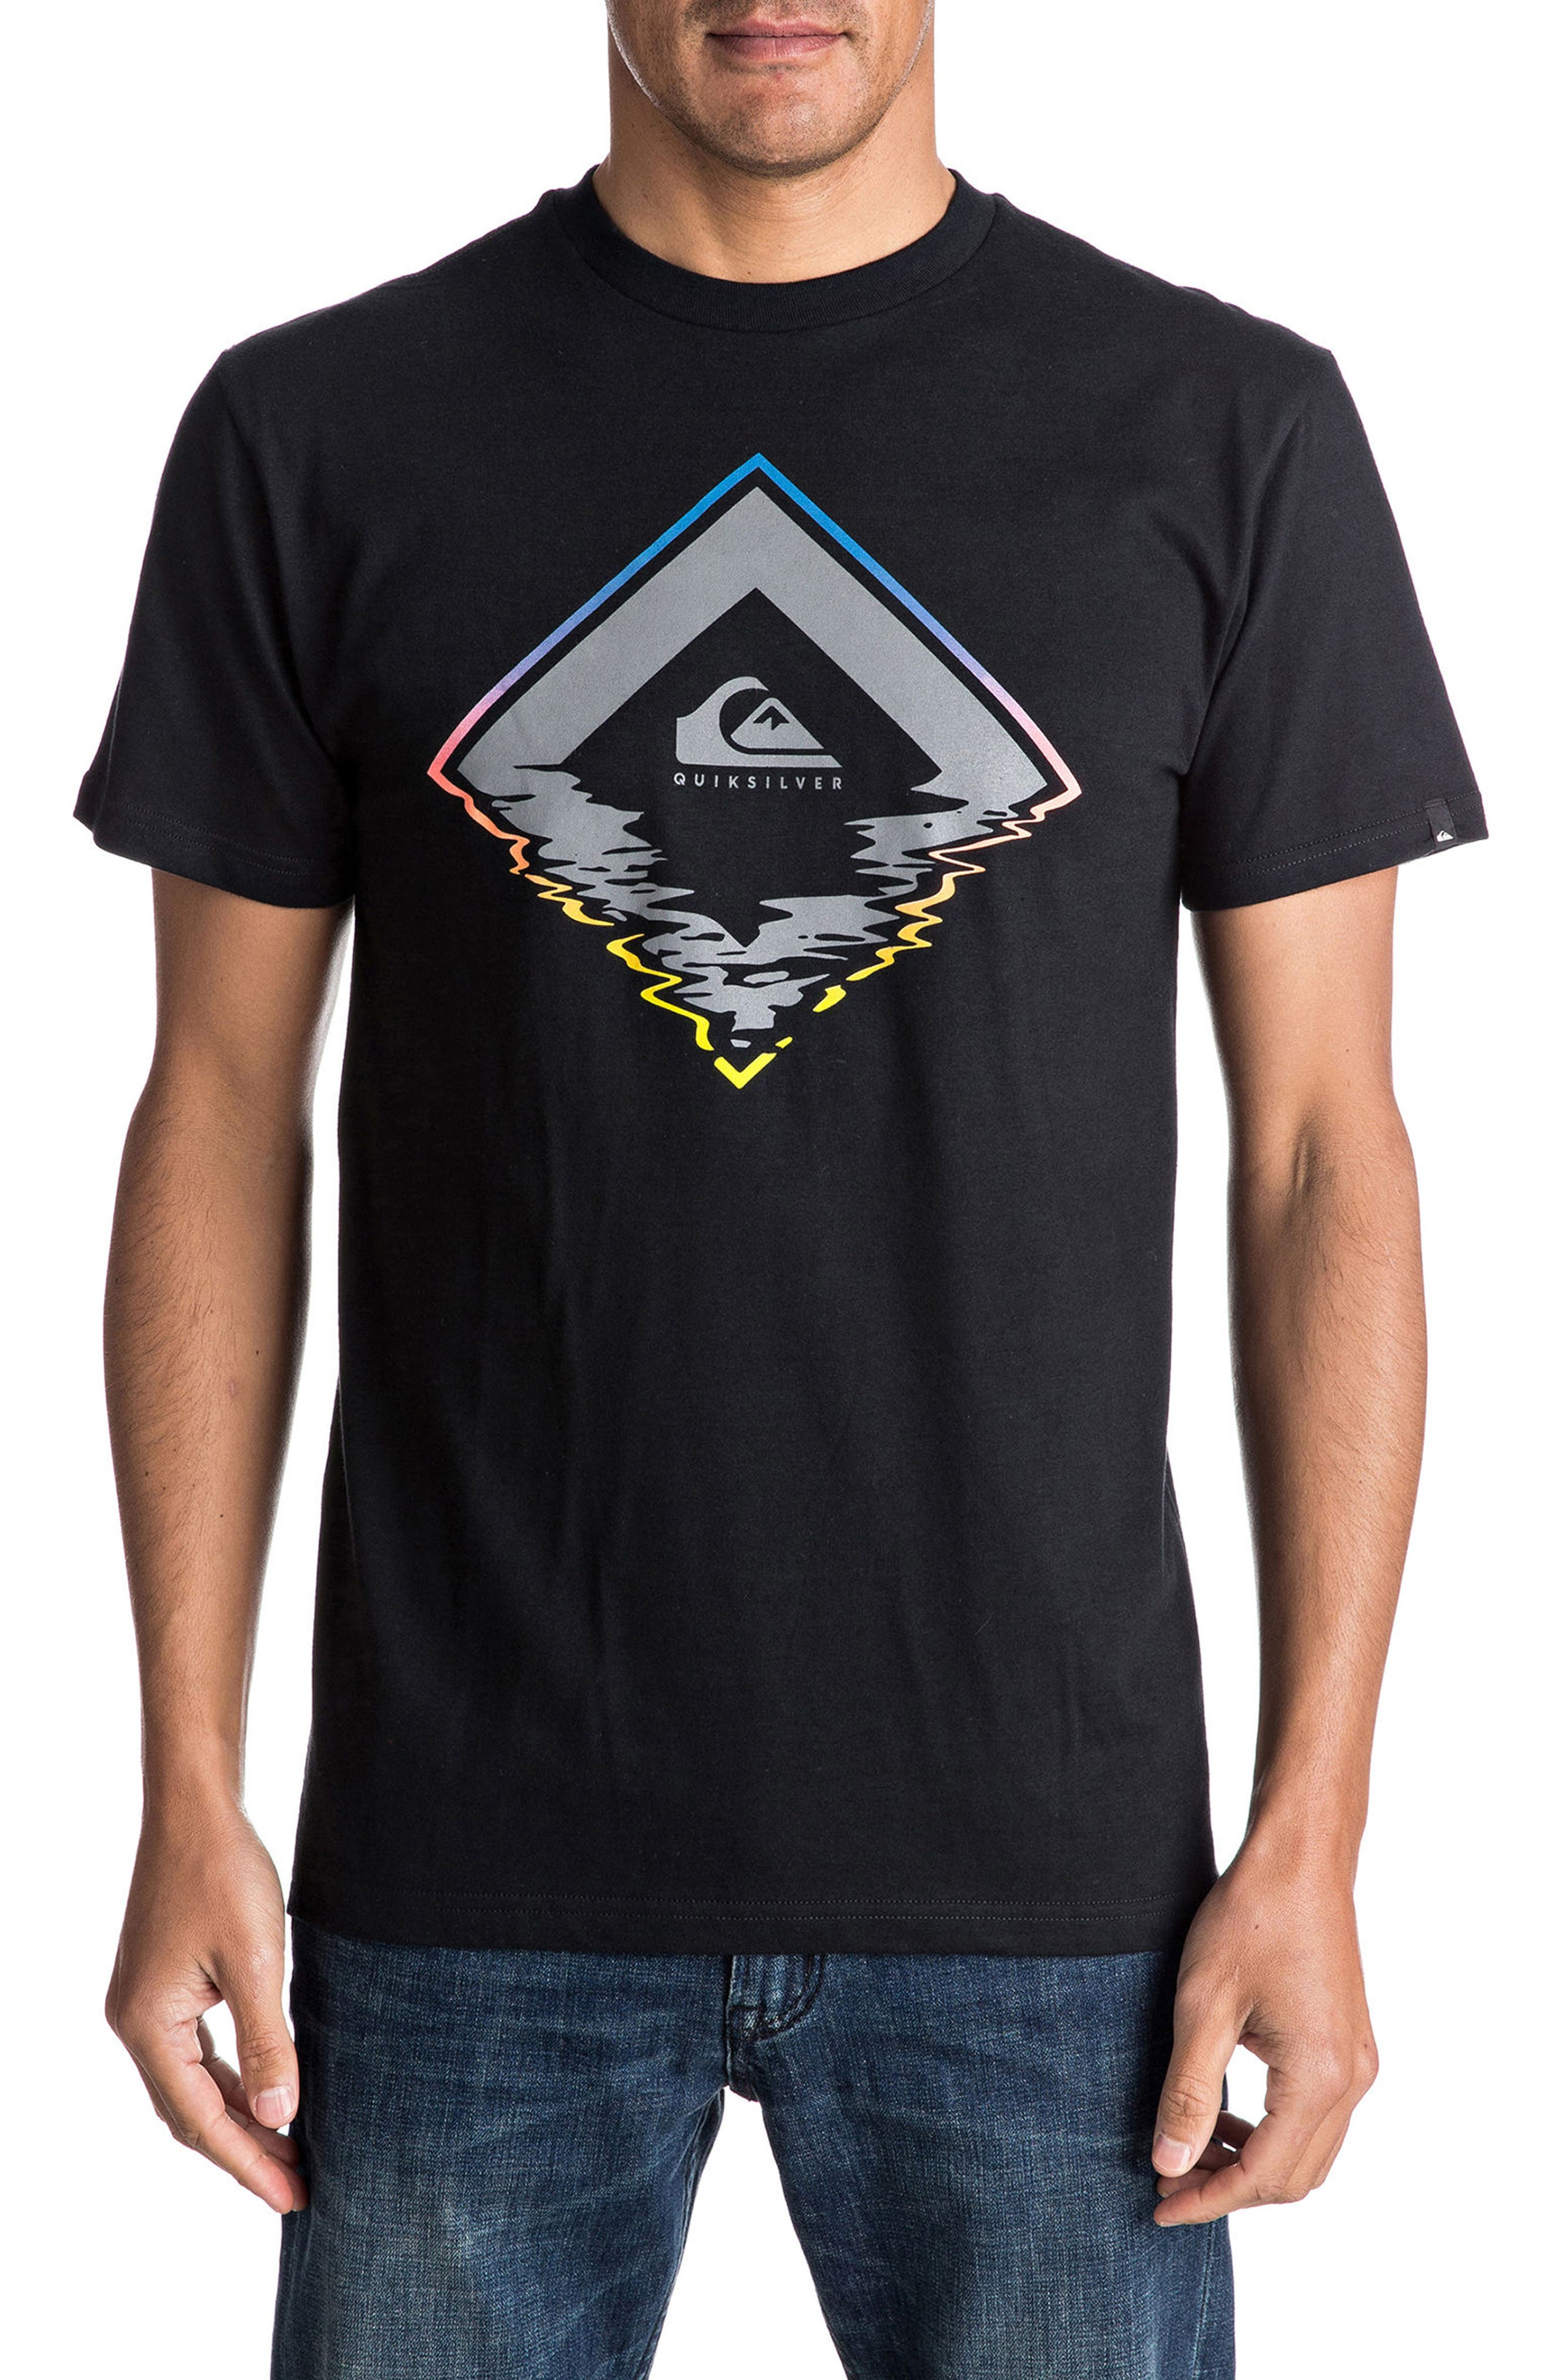 Quiksilver Glitchy Graphic T-Shirt